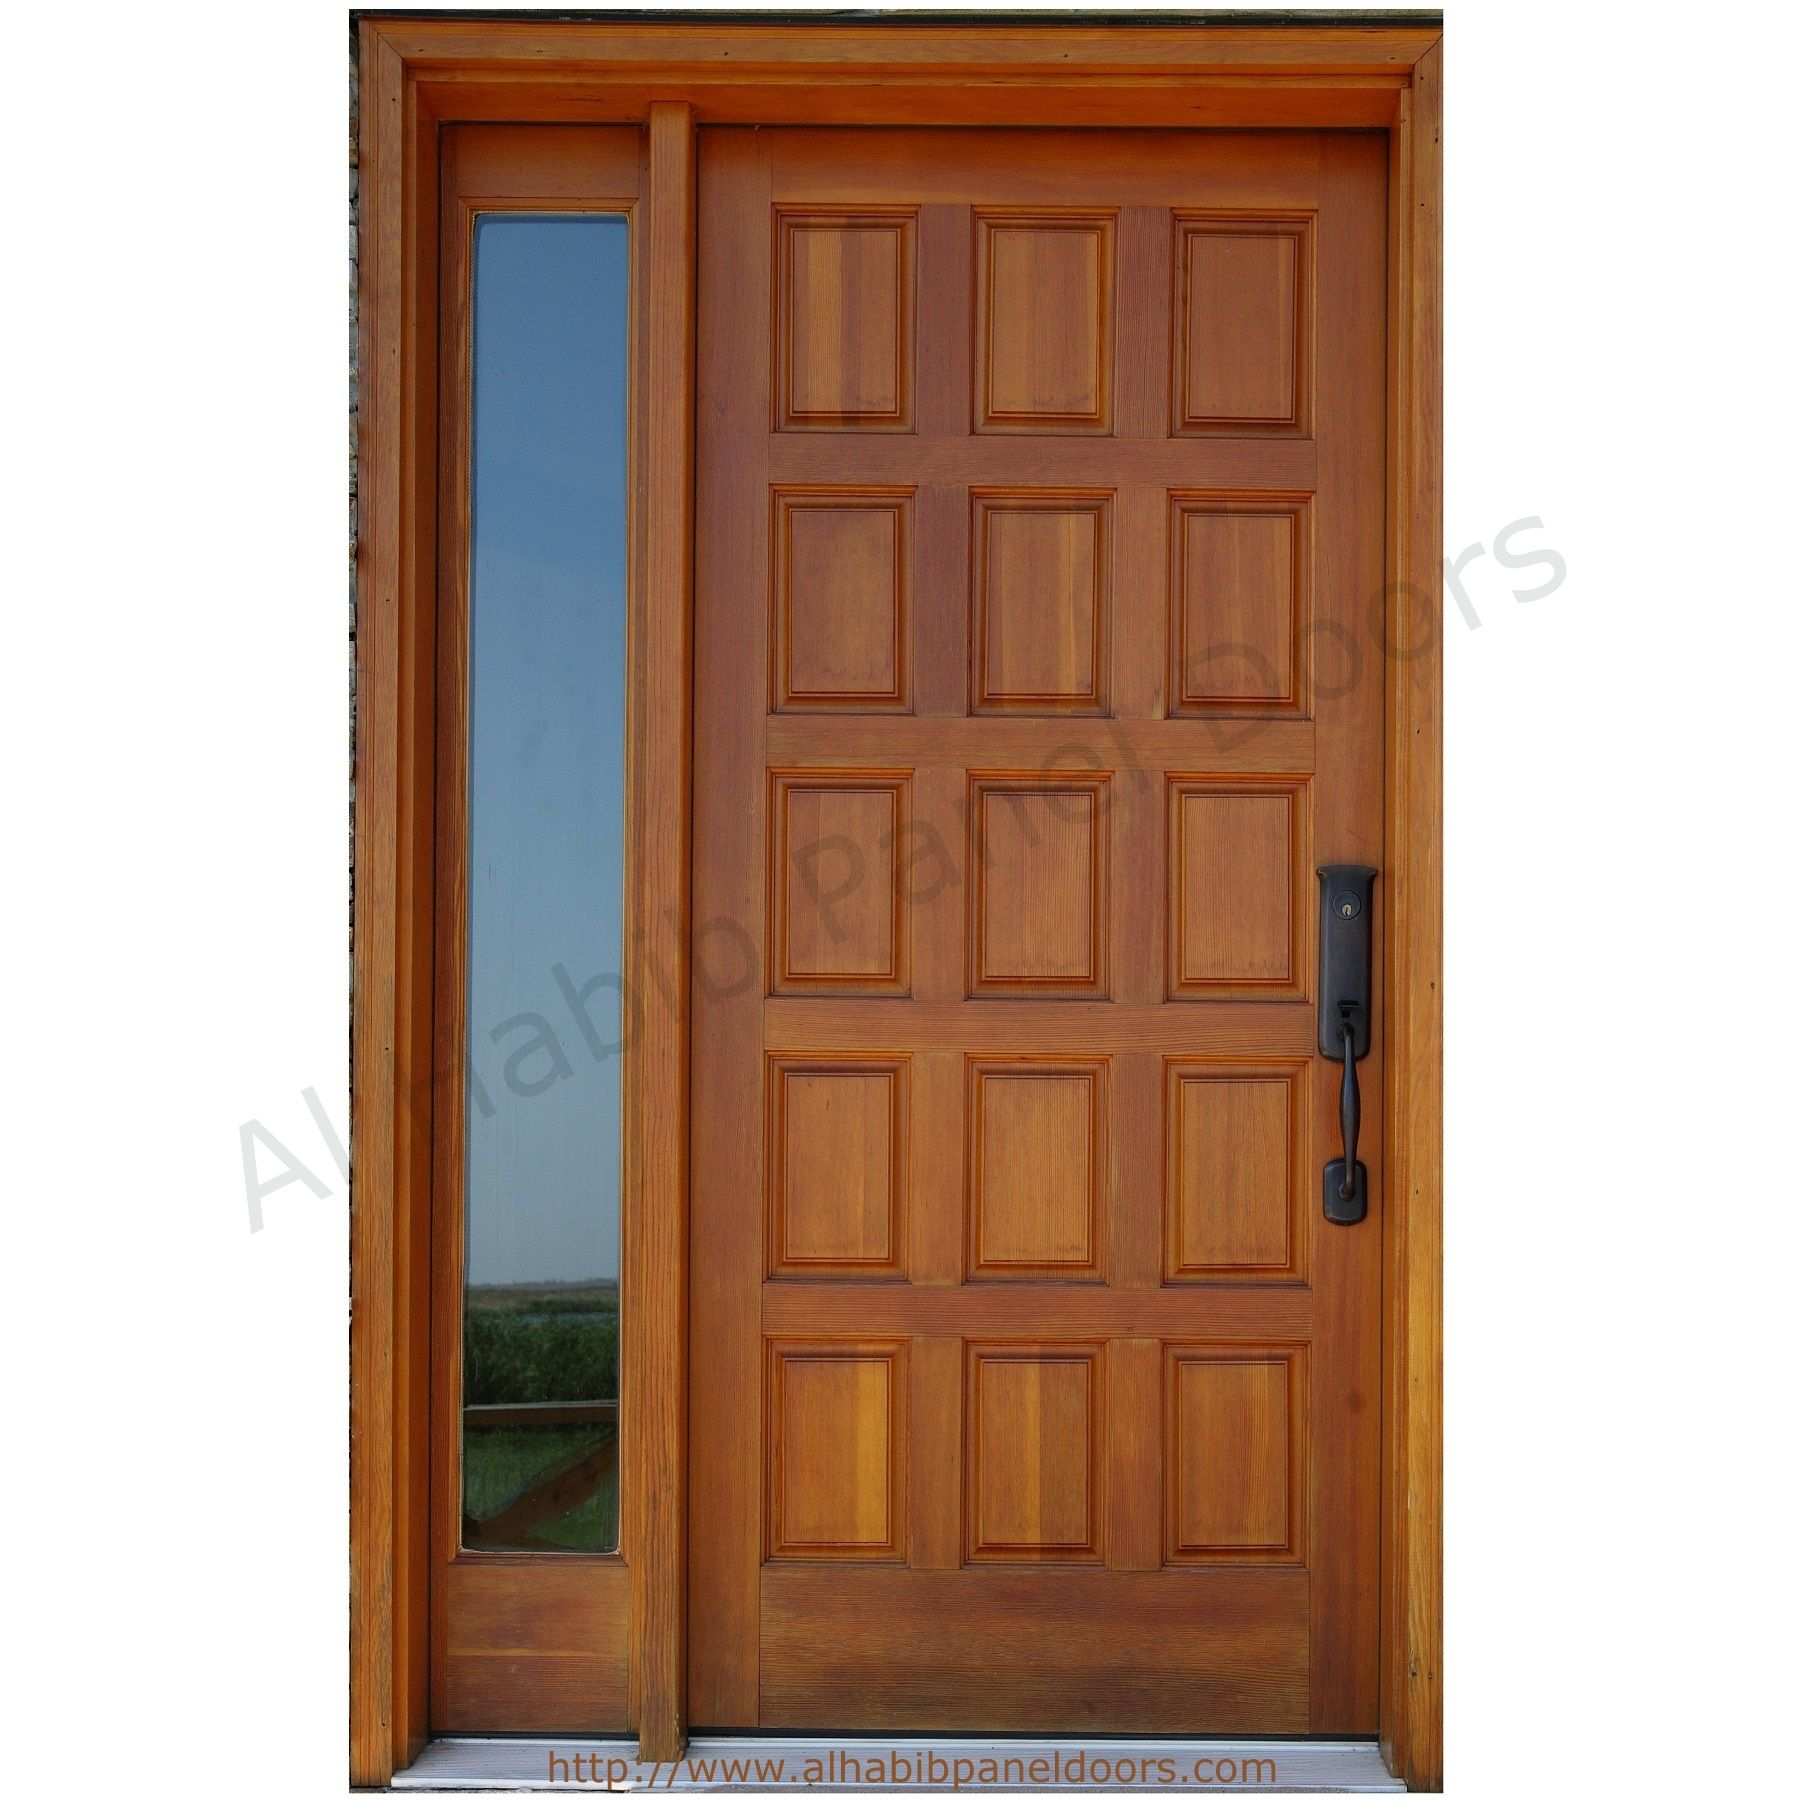 1800 #7F4221 Hpd427 Solid Wood Doors Al Habib Panel Doors Solid Wood Door  image Solid Wood Entrance Doors 41131800